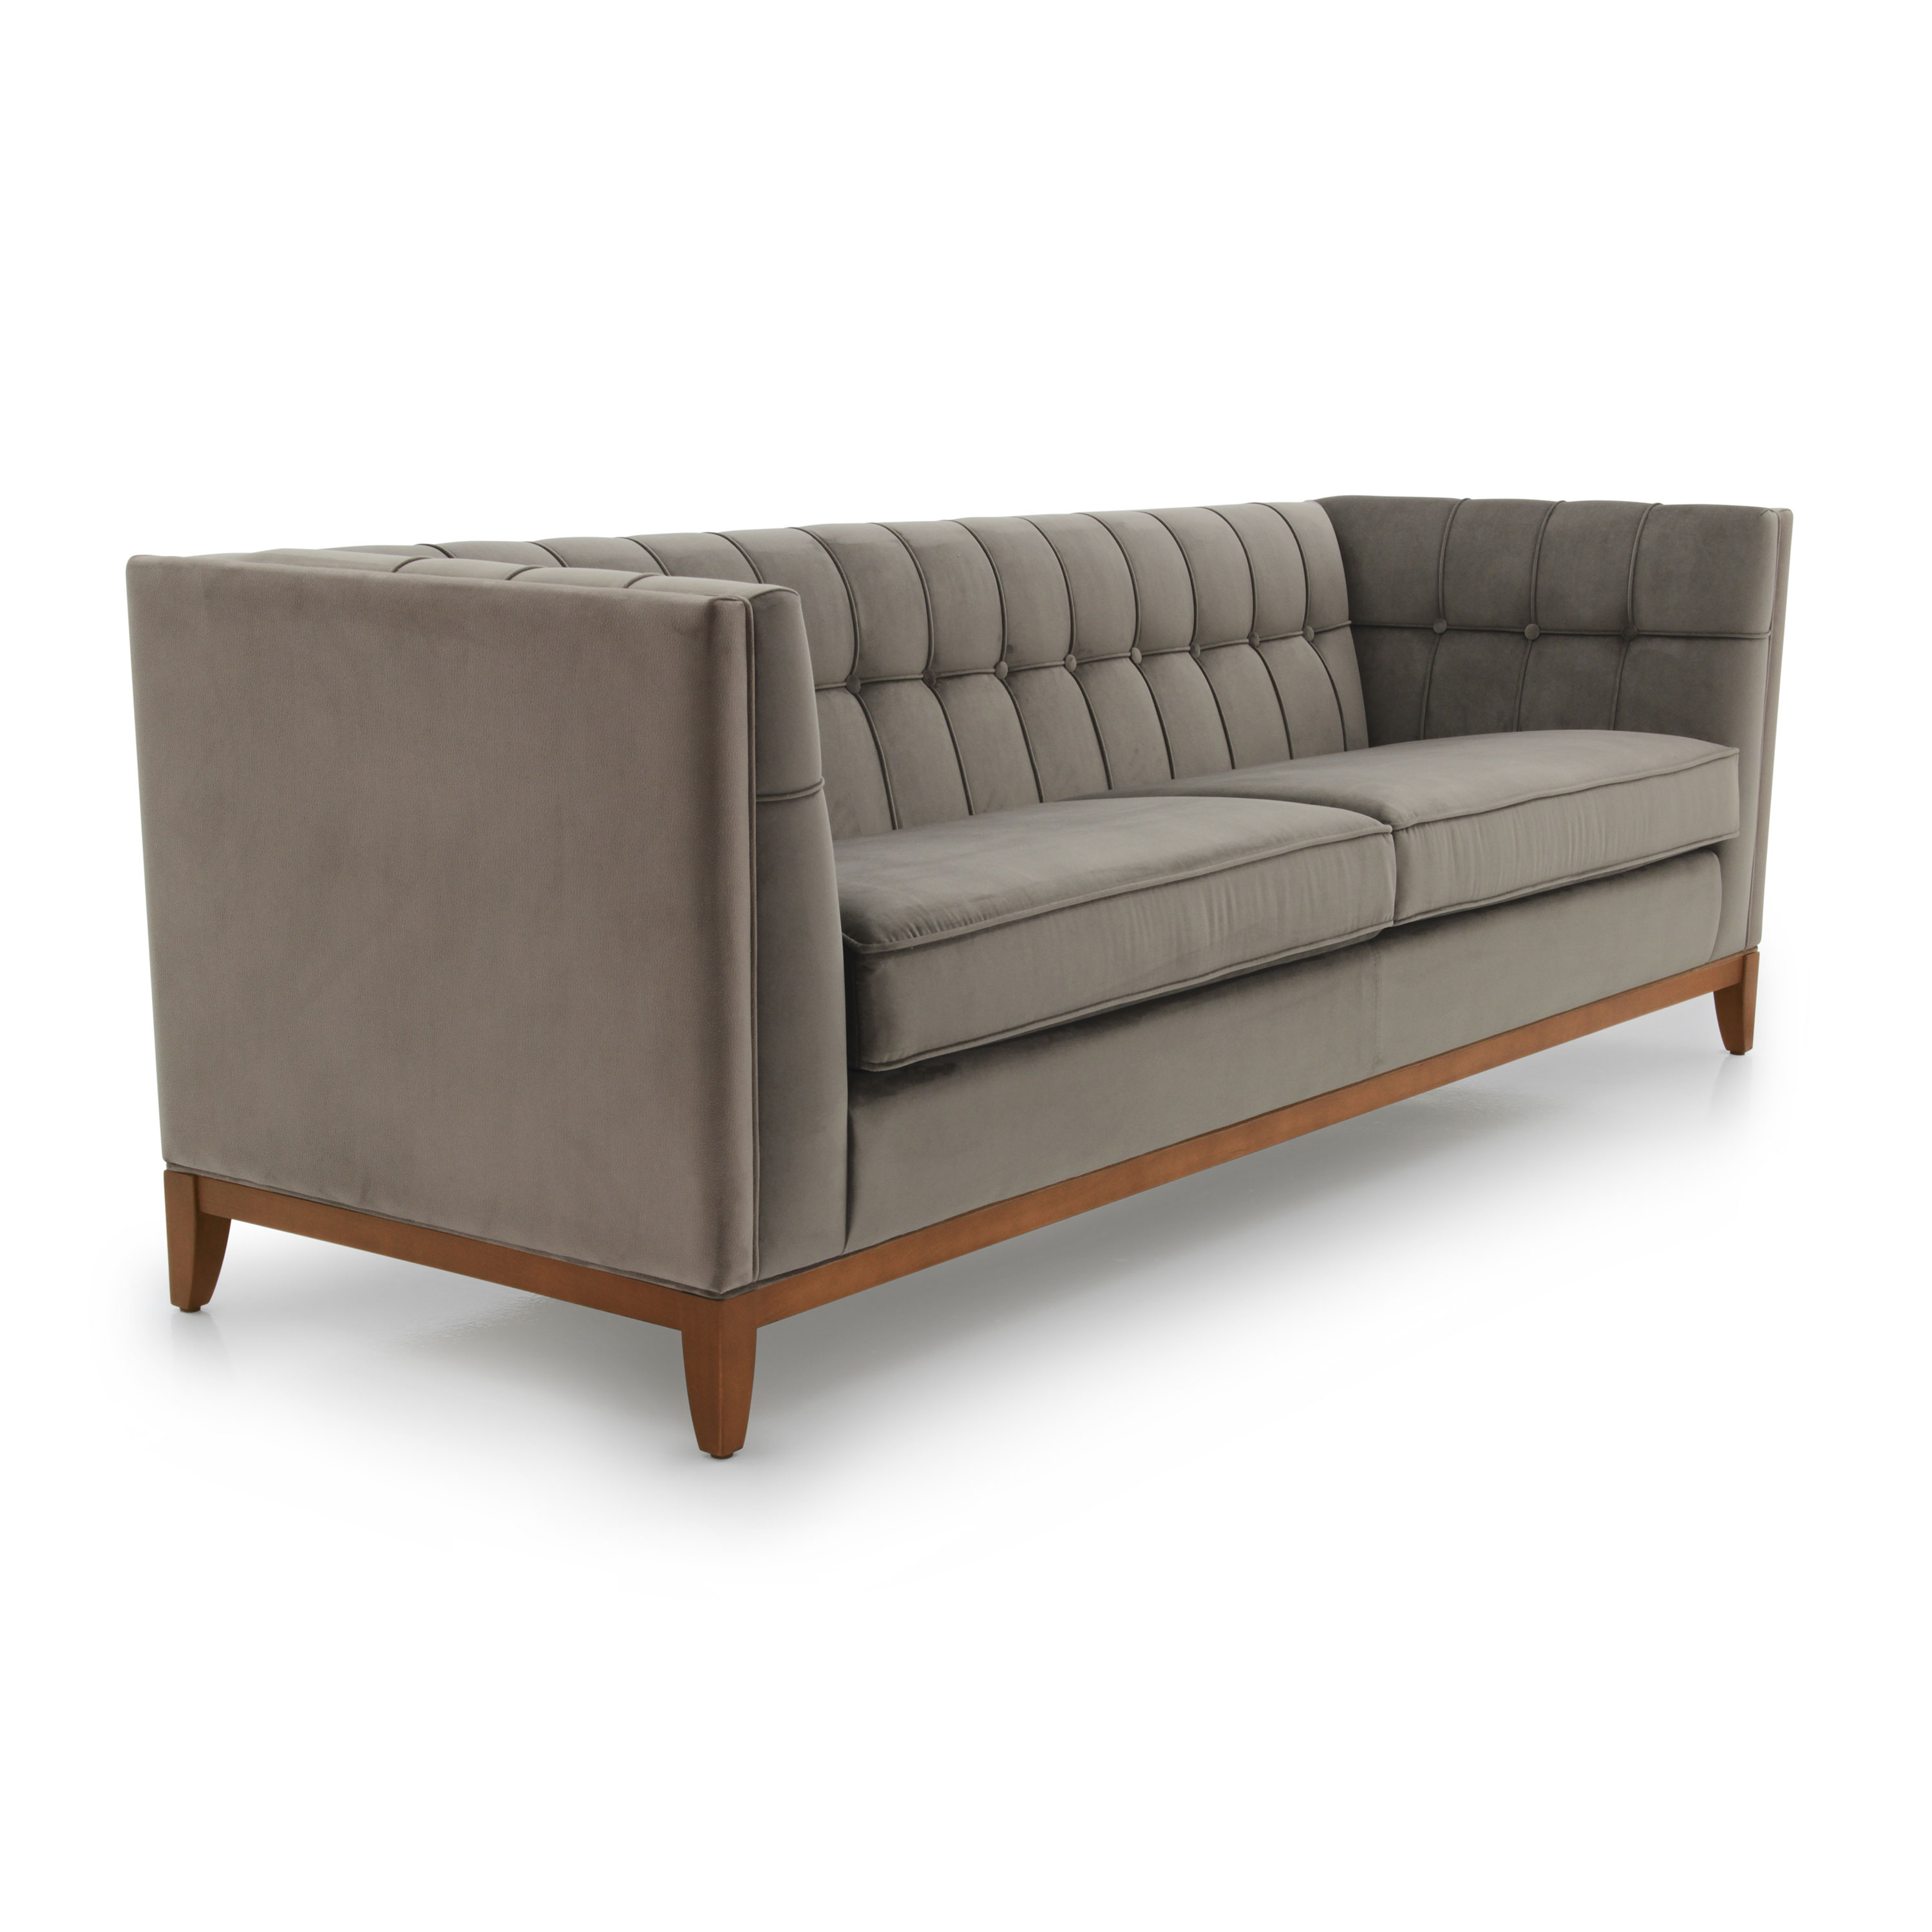 Modern Style Sofa Made of Wood Lixis 960 Sevense